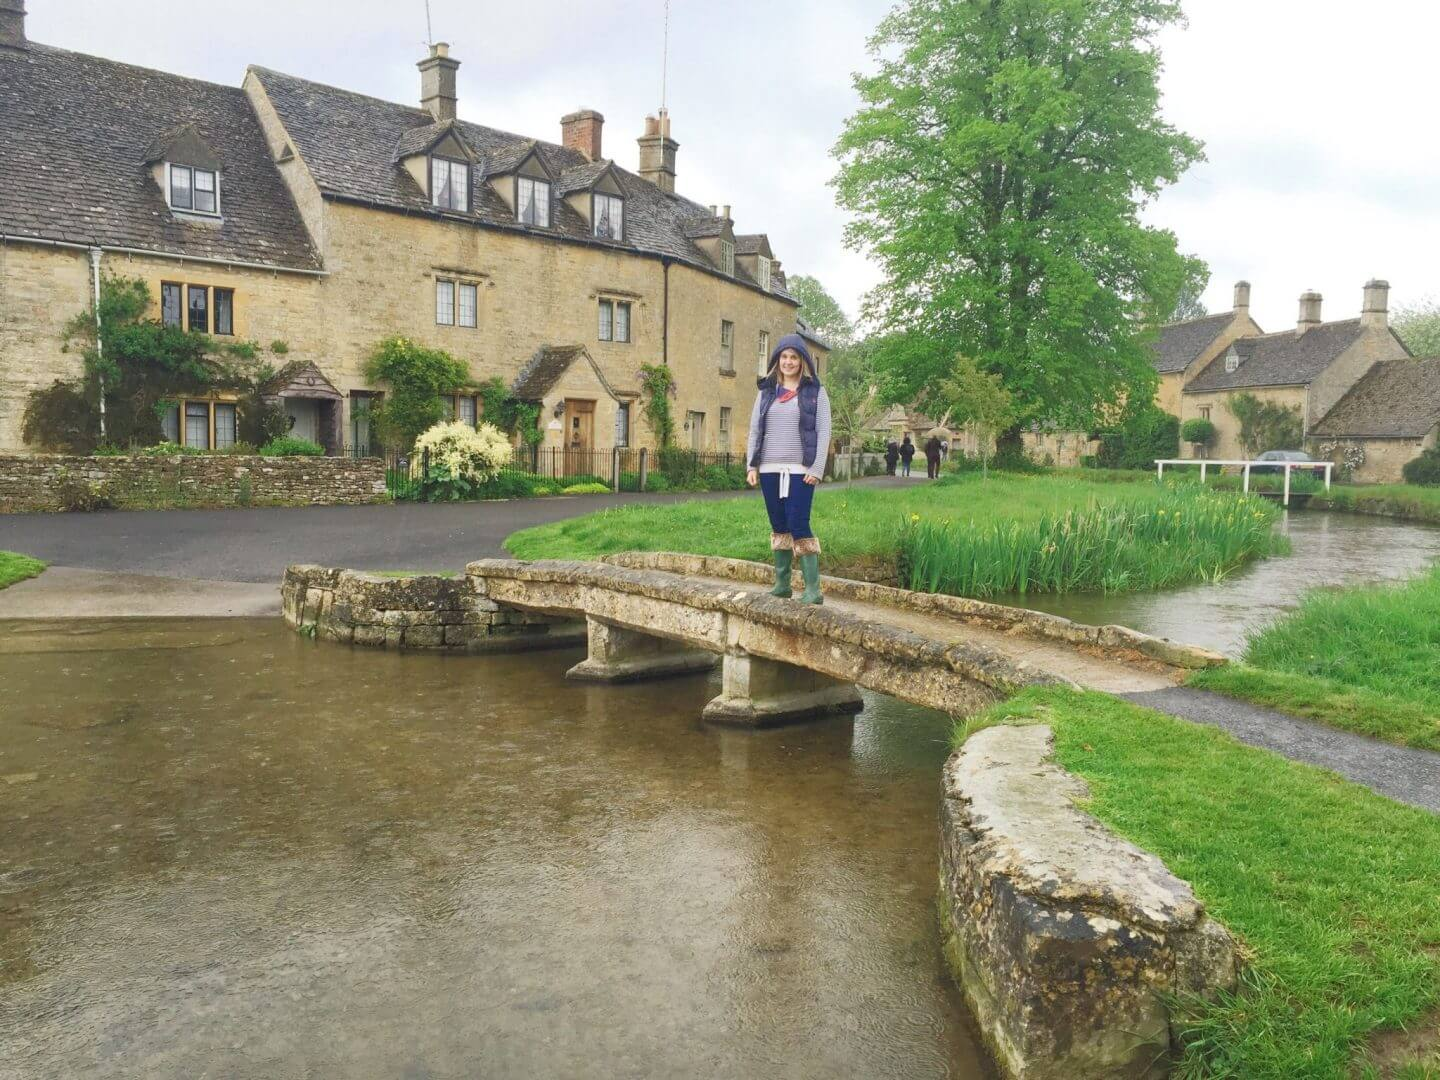 a bridge over a stream in Lower Slaughter, with yellow stone houses behind.